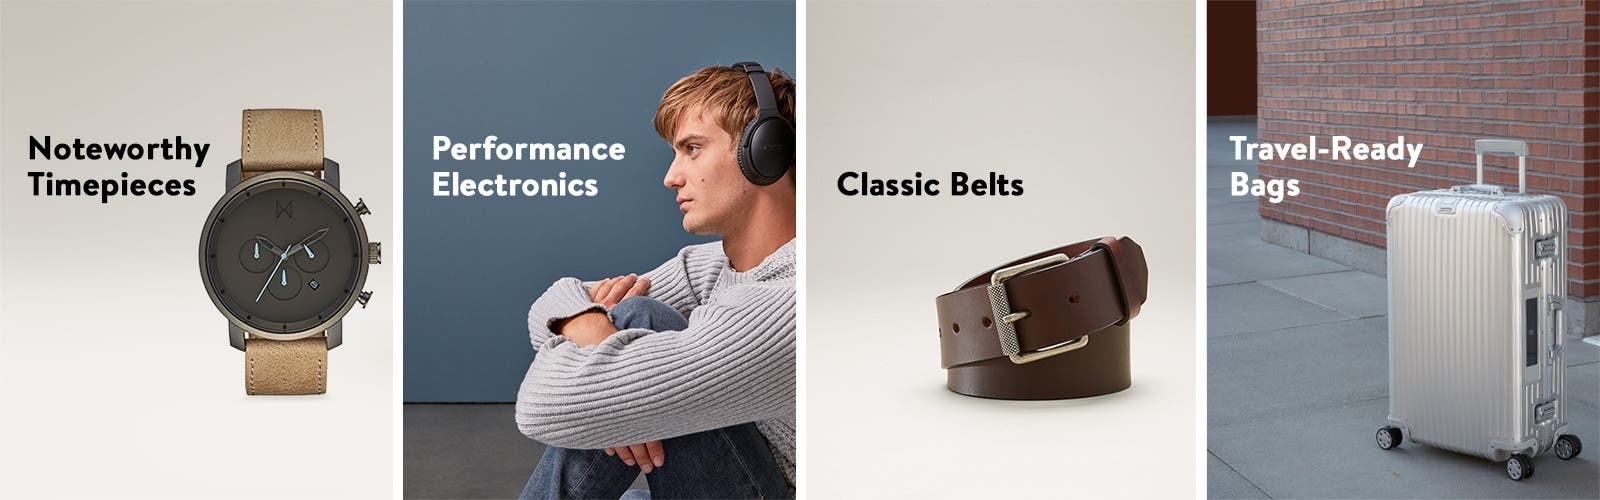 Noteworthy timepieces, performance electronics, classic belts and travel-ready bags.